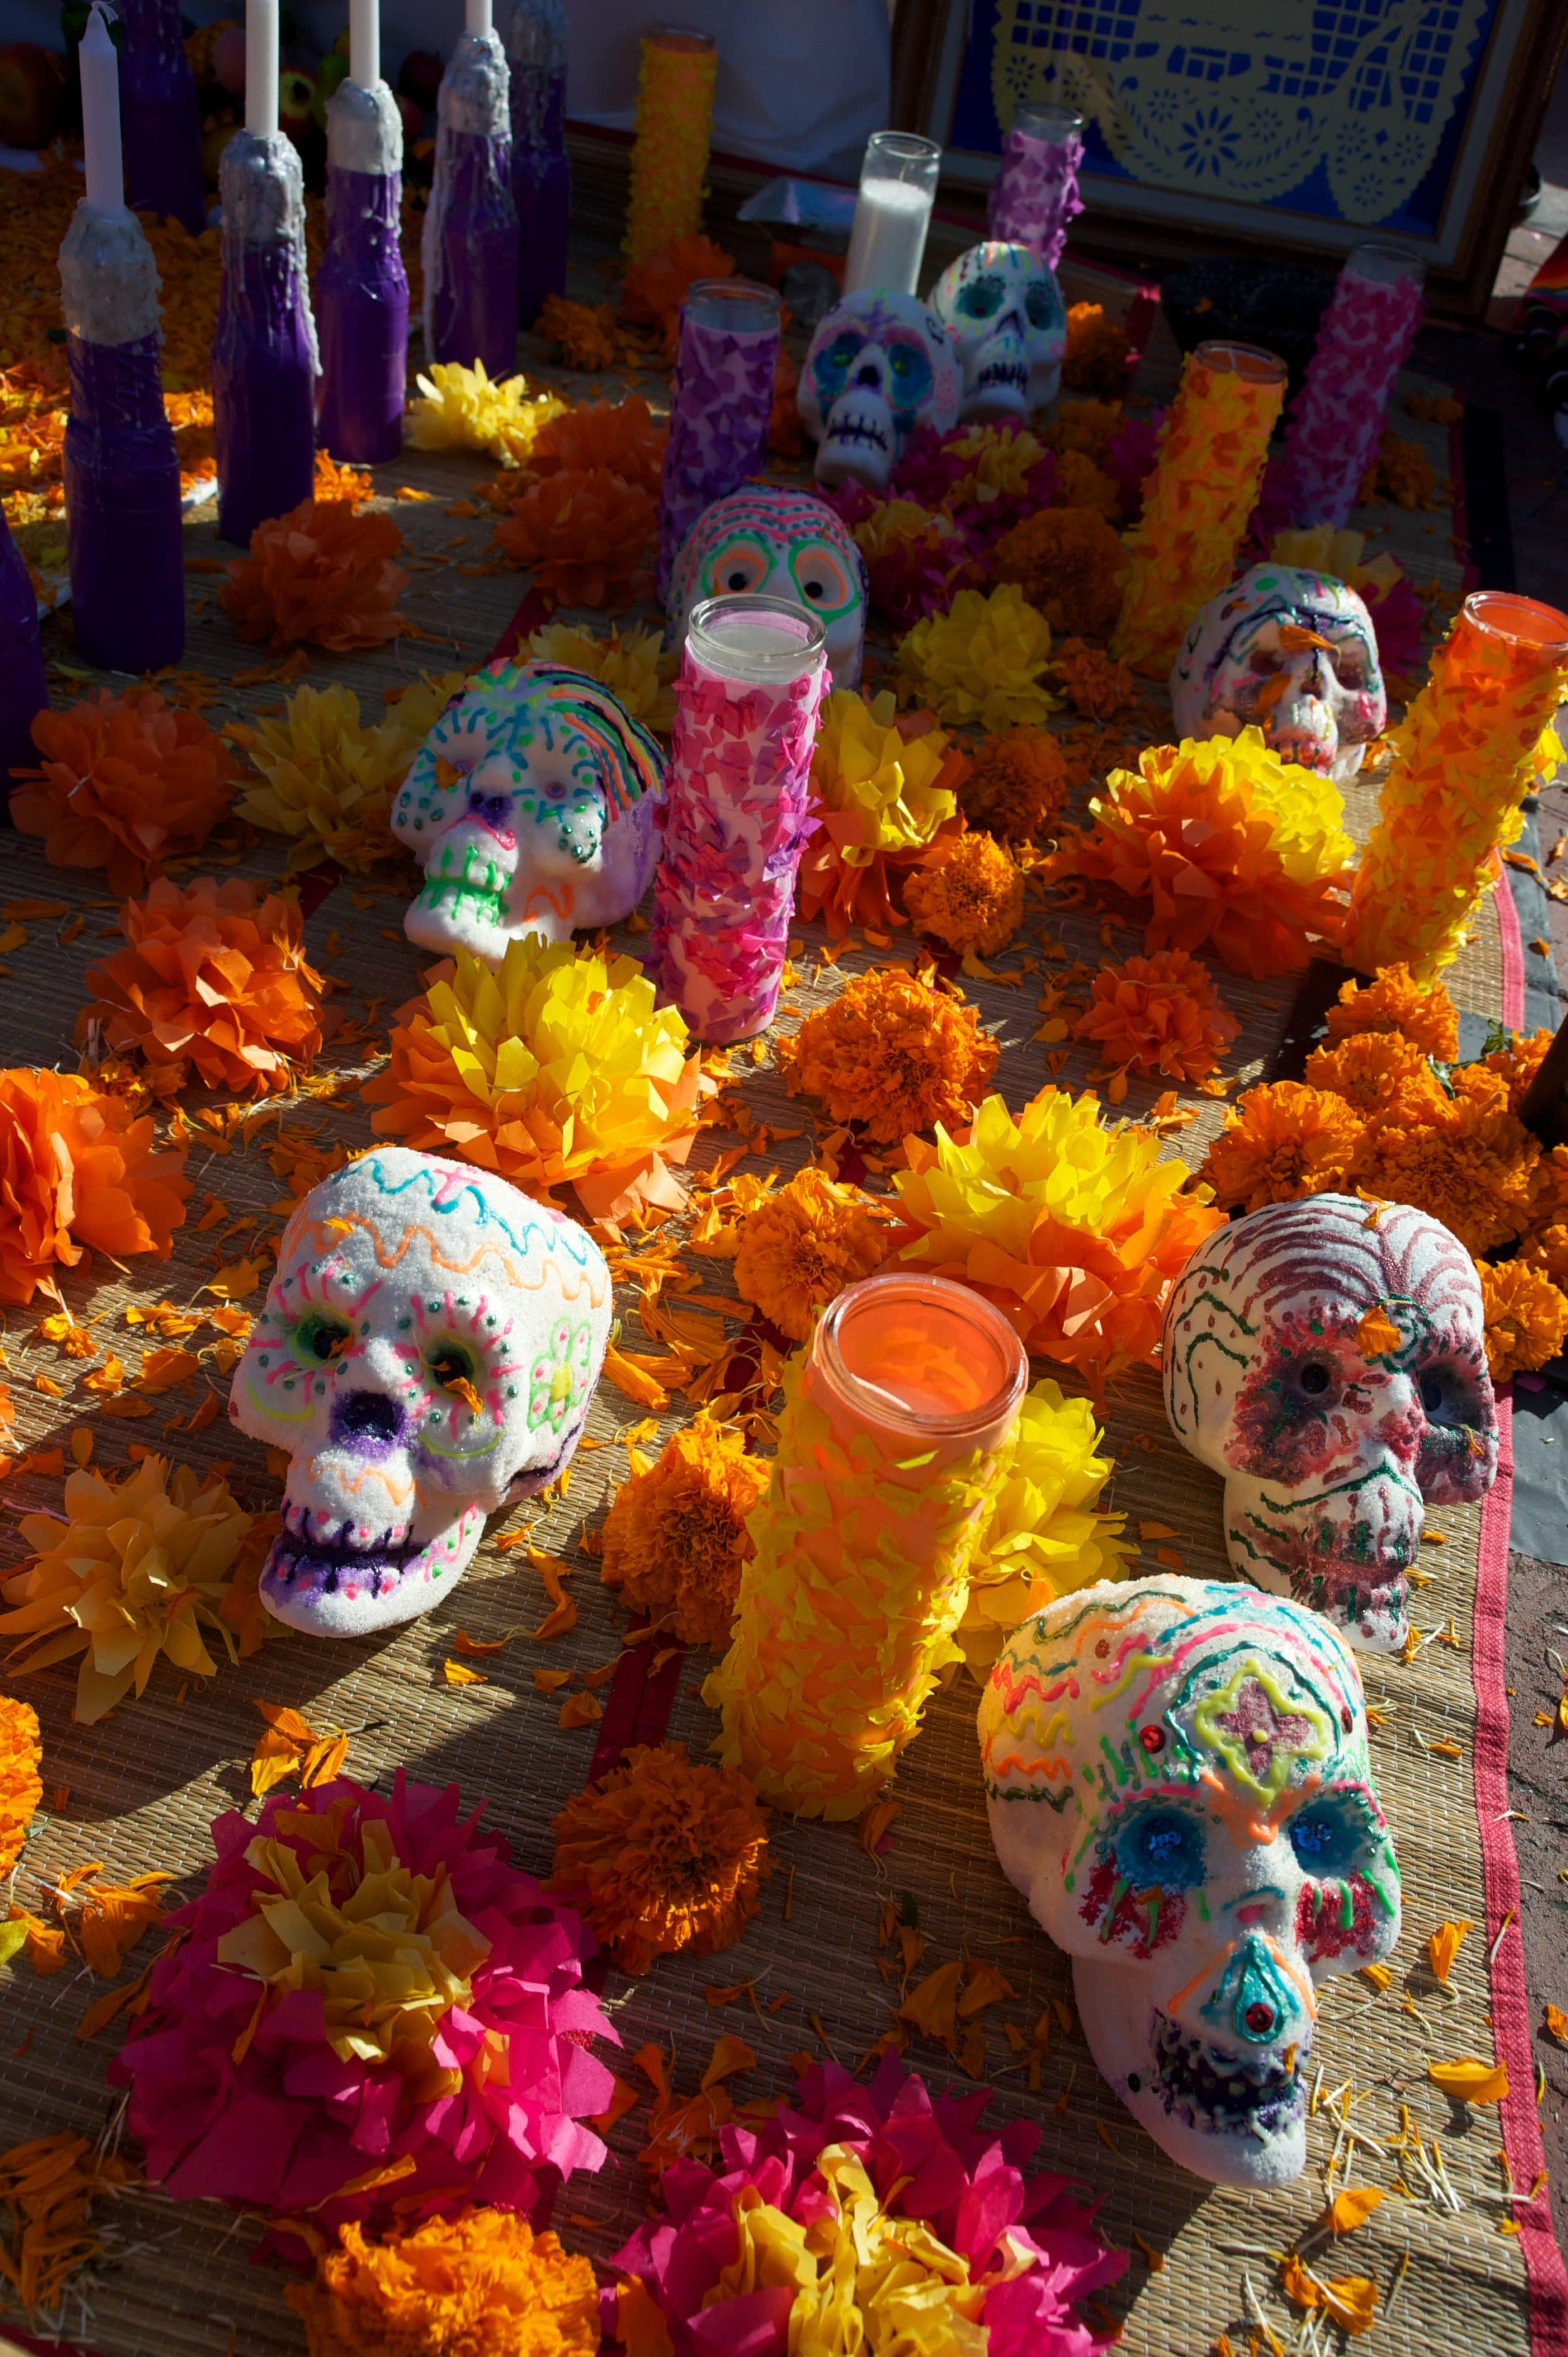 Dia de los Muertos altar with marigolds and sugared skulls